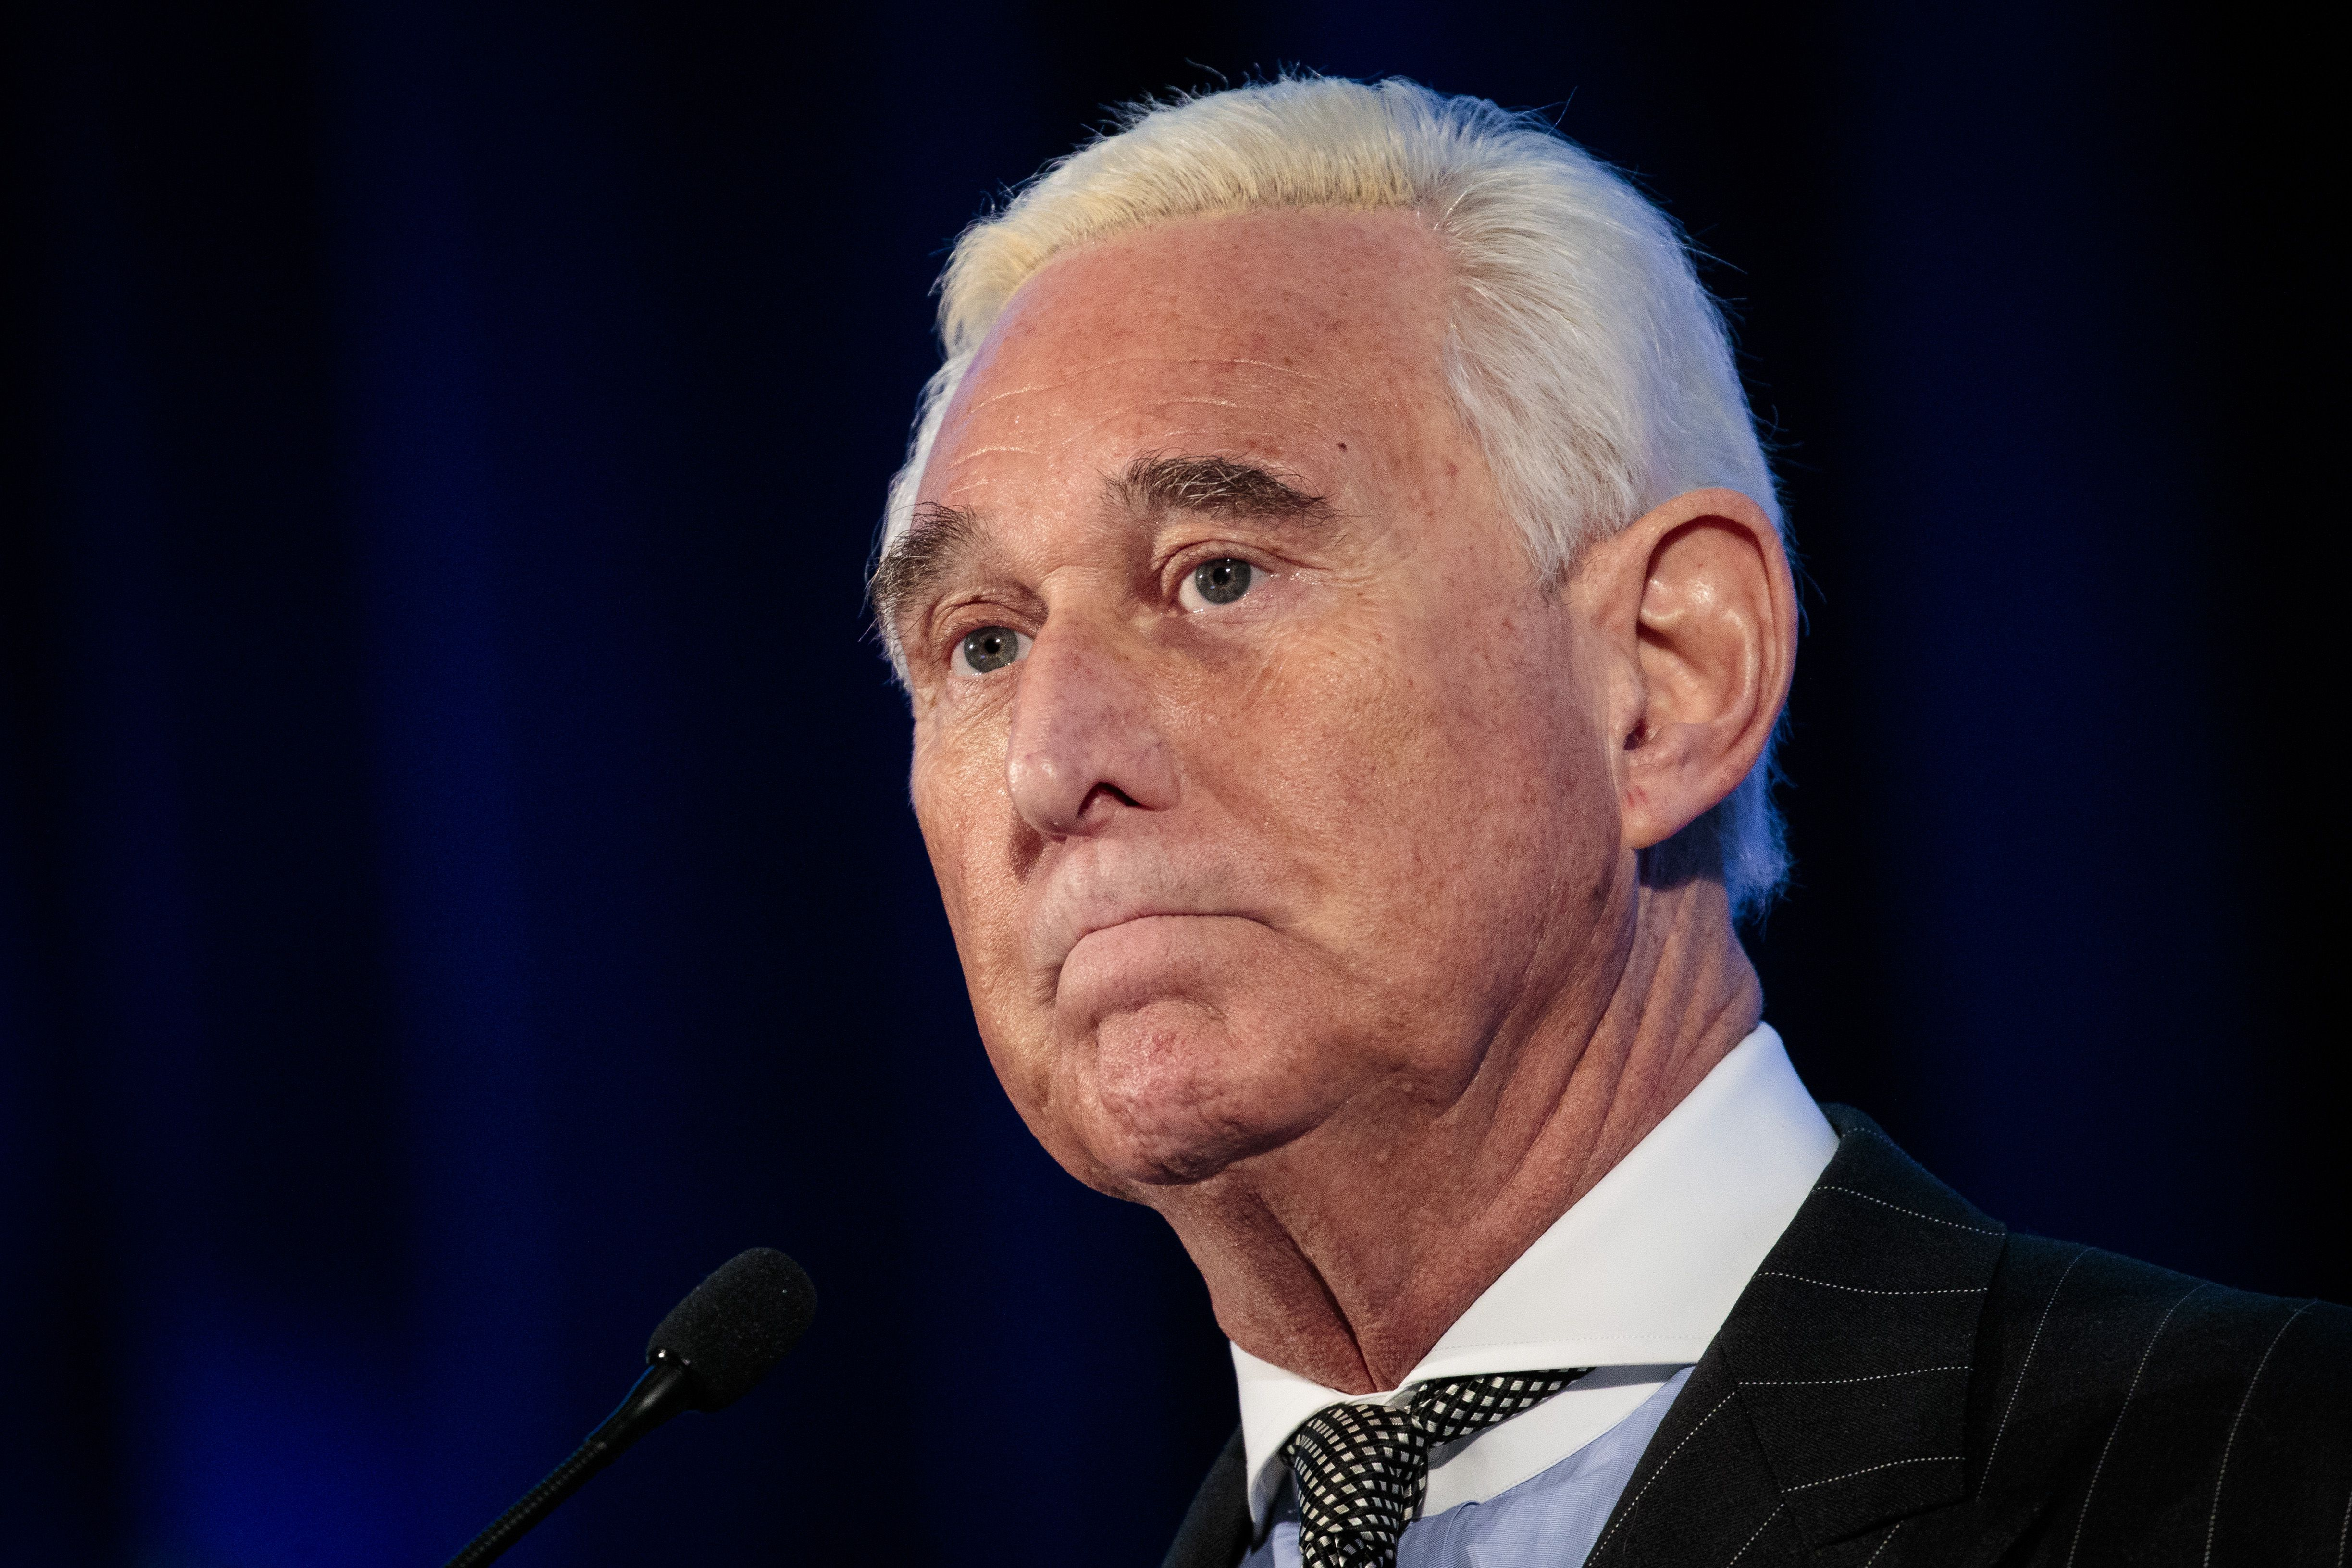 Nearly half of Republicans support pardoning Roger Stone - Axios